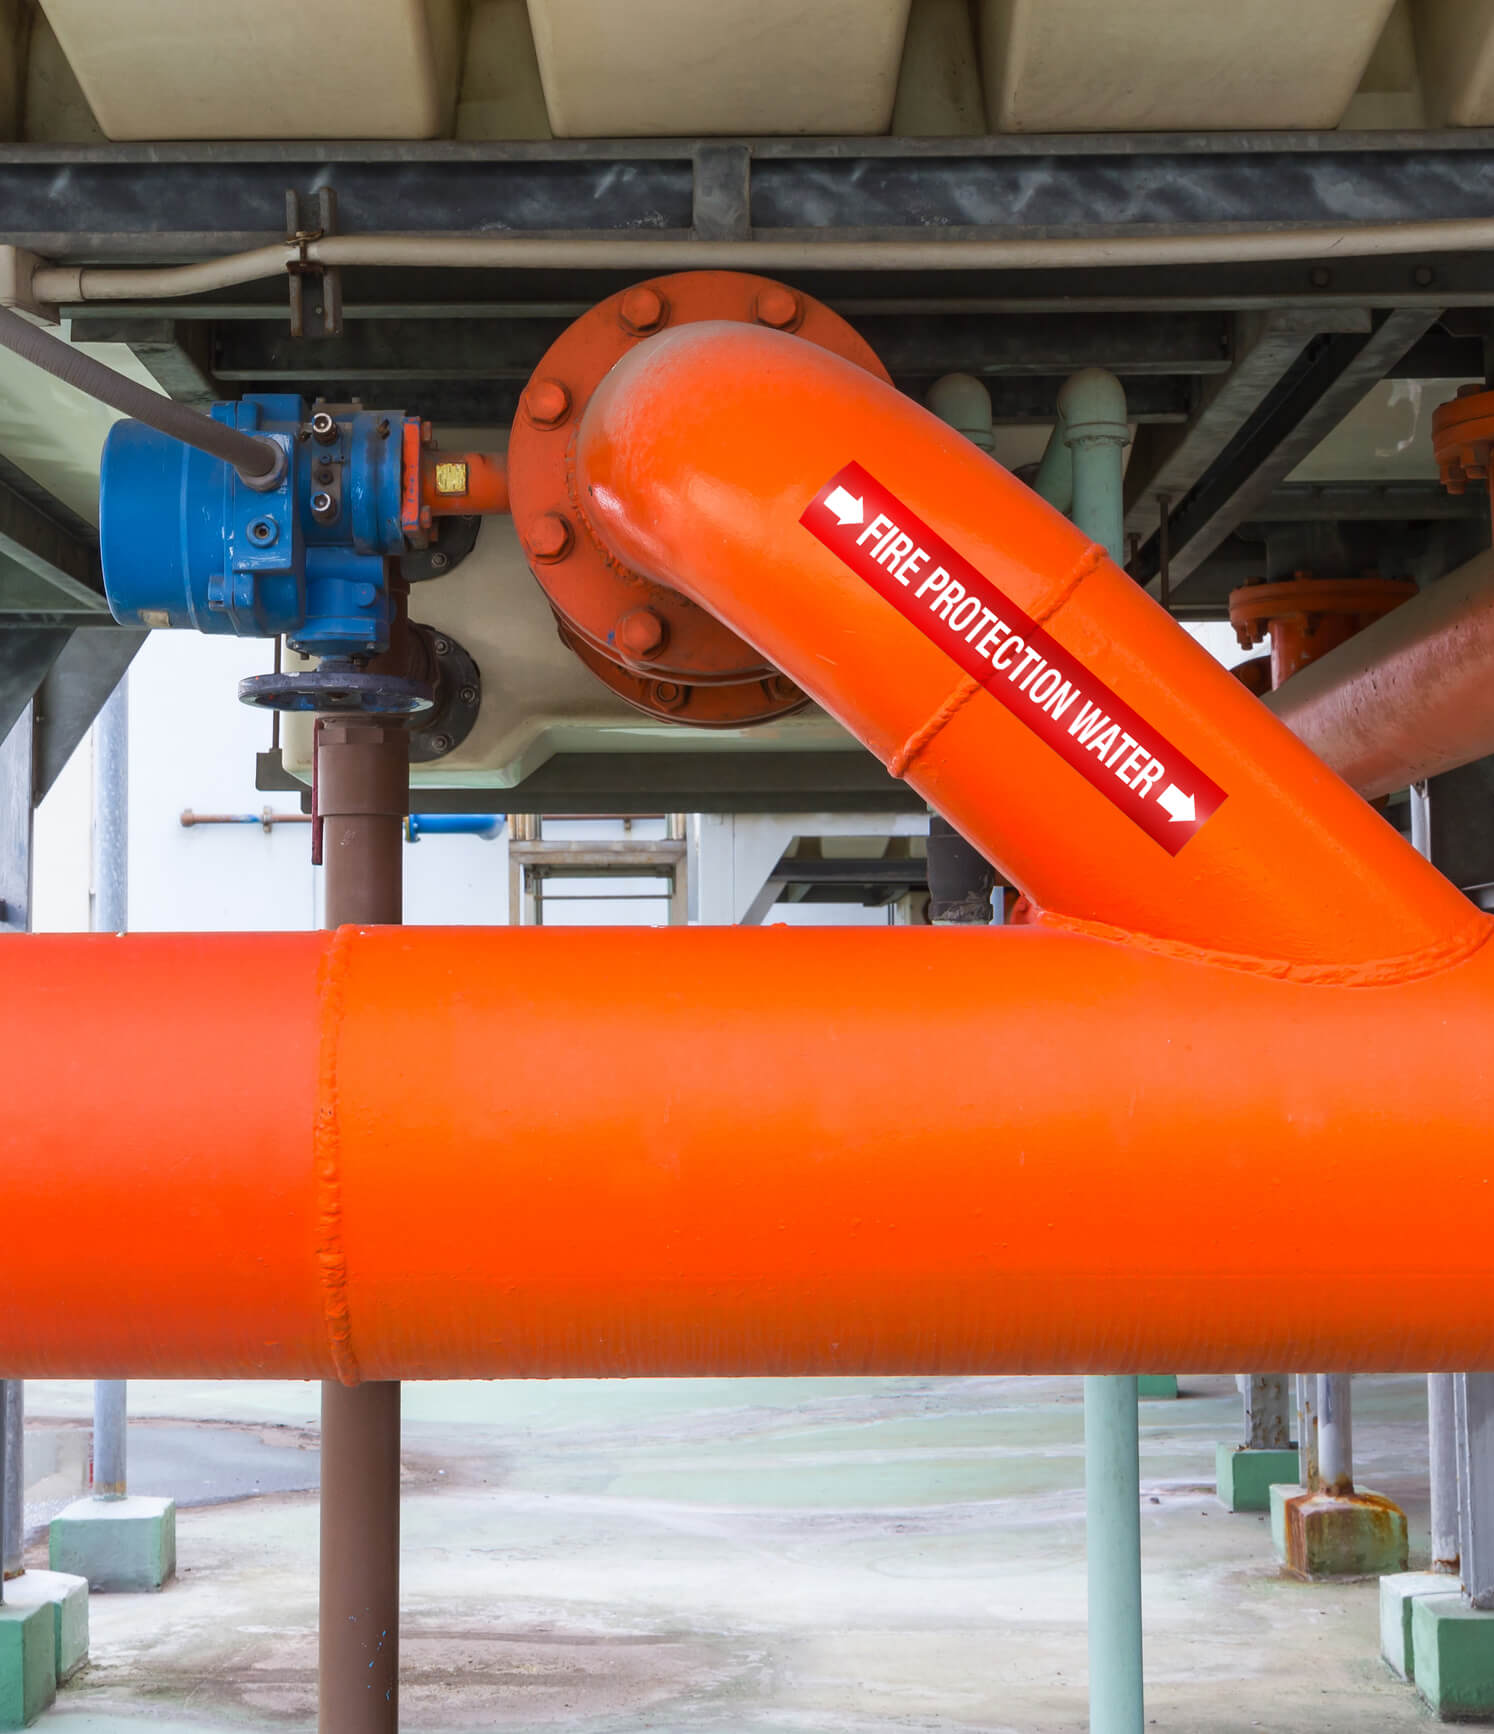 Where are pipe labels required